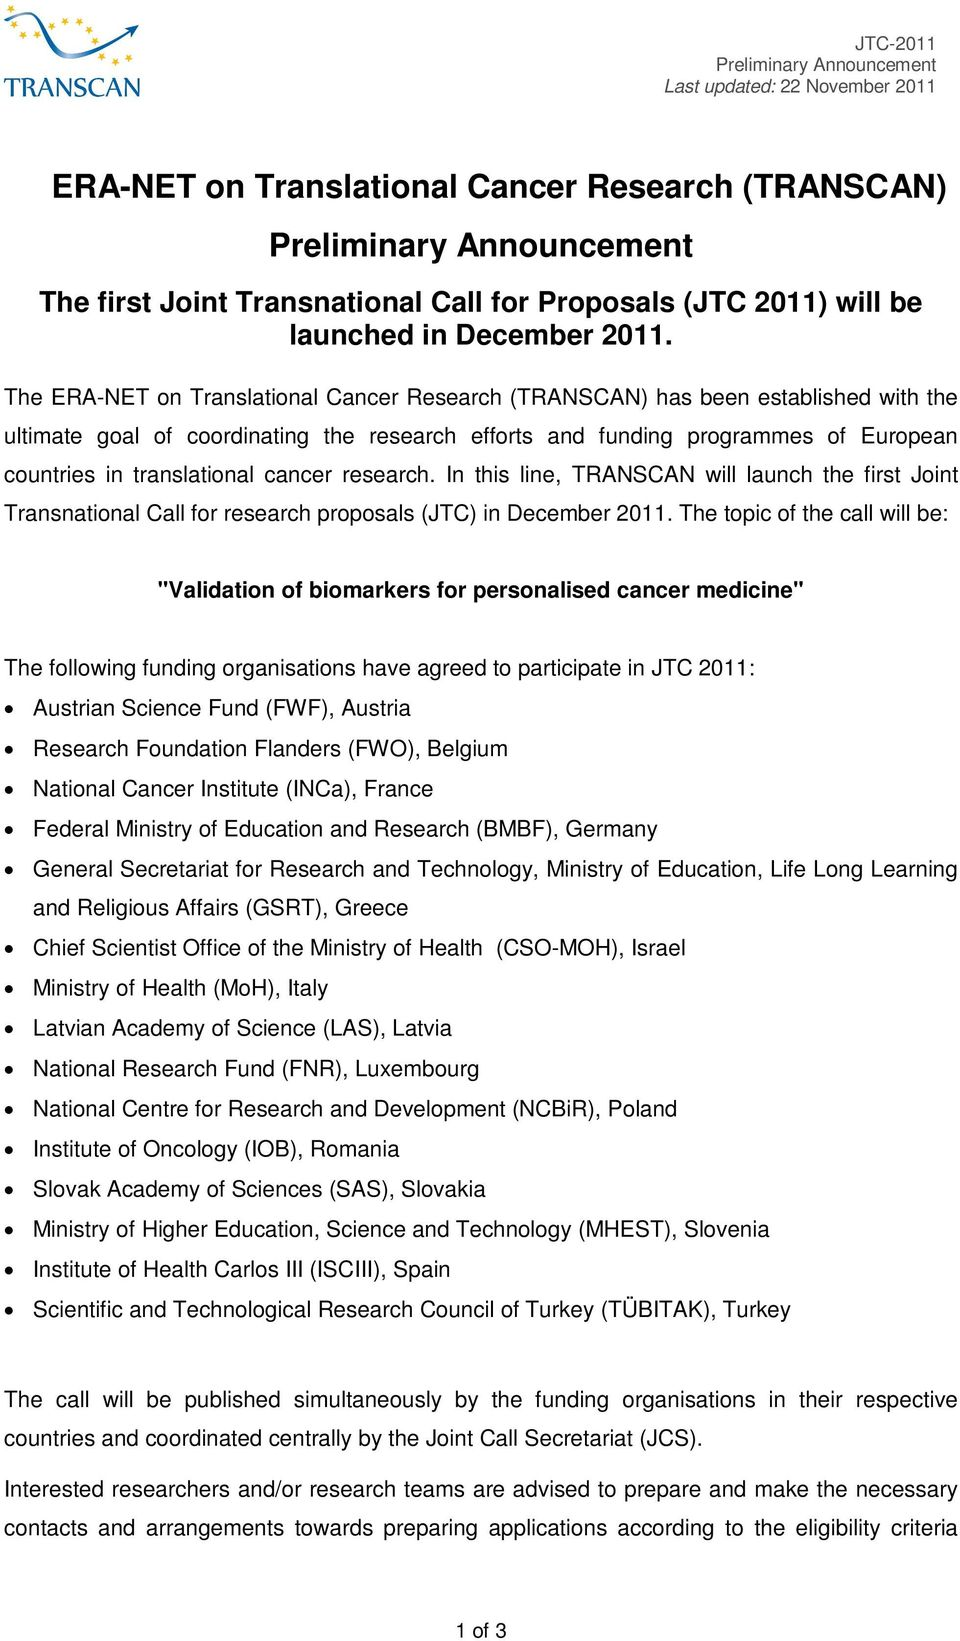 cancer research. In this line, TRANSCAN will launch the first Joint Transnational Call for research proposals (JTC) in December 2011.